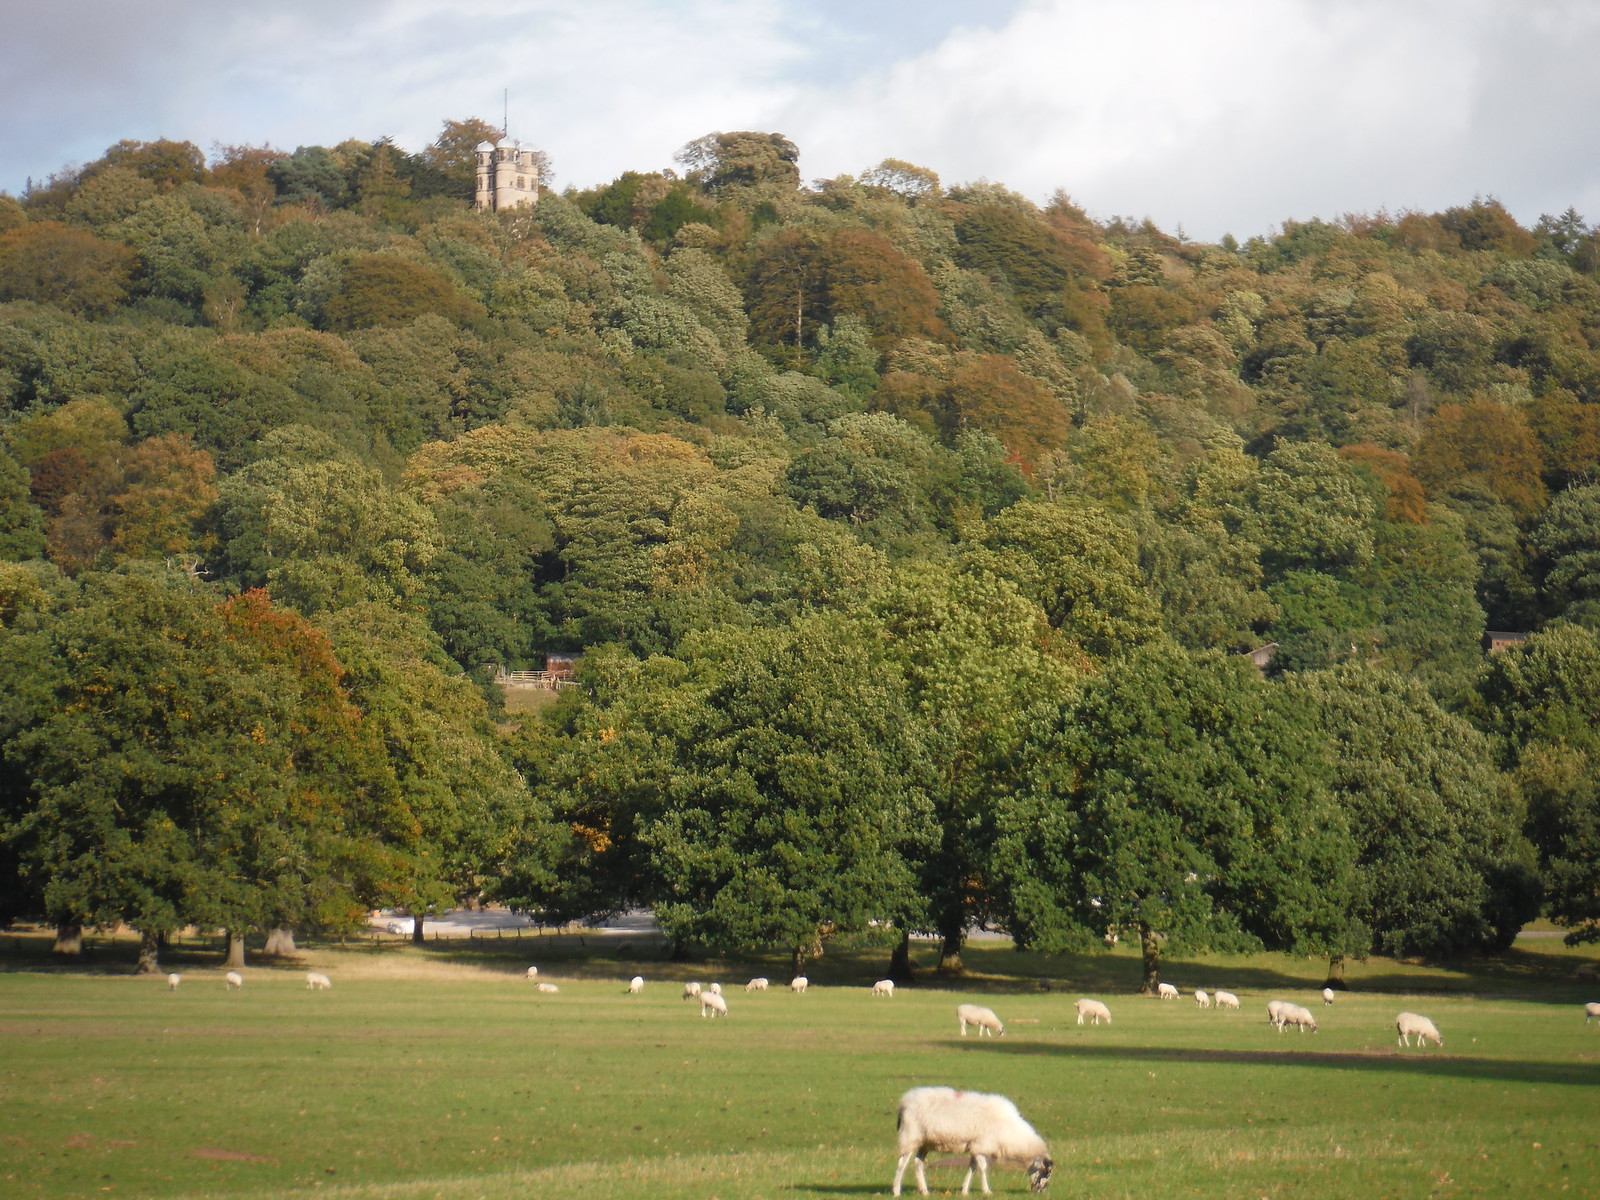 Stand Wood and the Hunting Tower, Chatsworth Estate SWC Walk 322 - Grindleford Circular (via Chatsworth House)